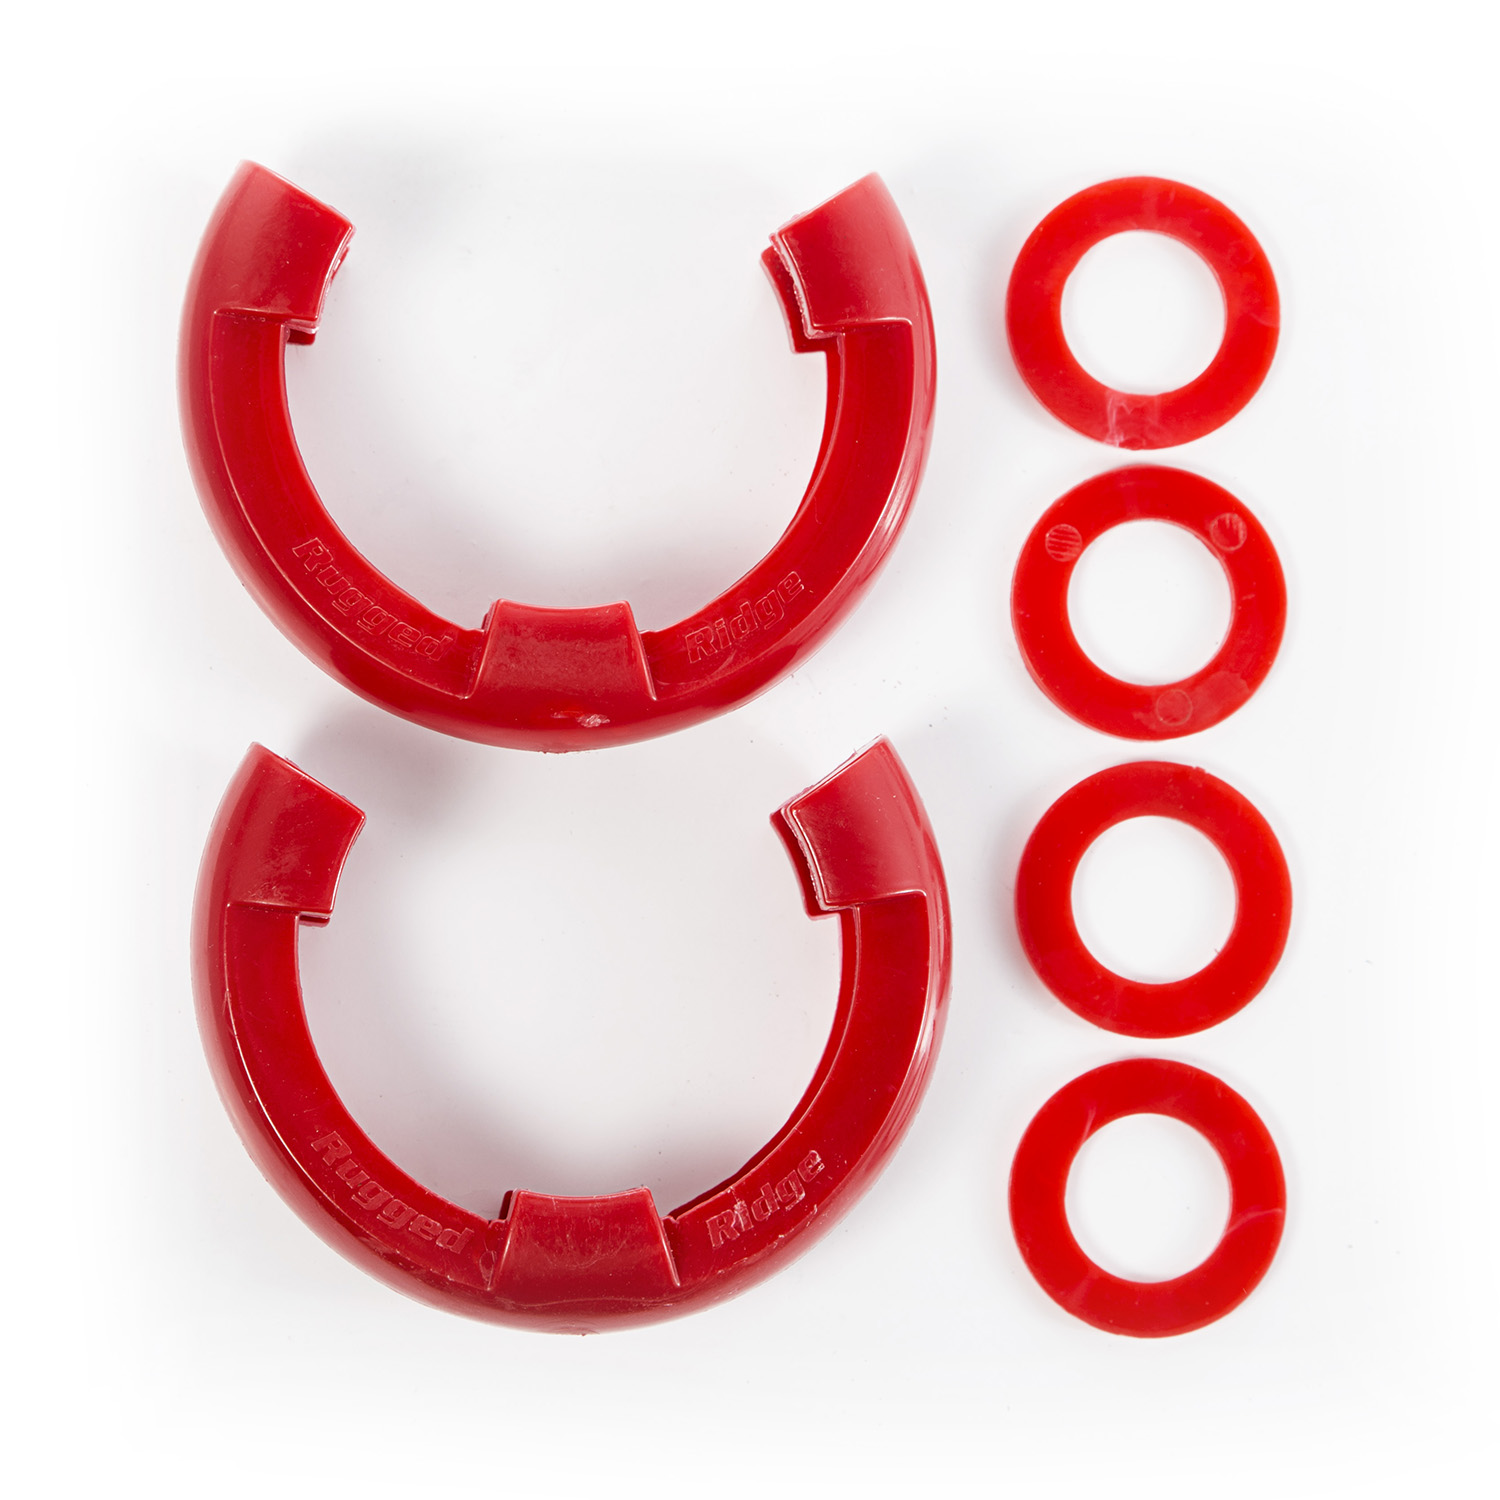 Rugged Ridge D-Shackle Isolator 3/4 Inch Kit, Red Pair